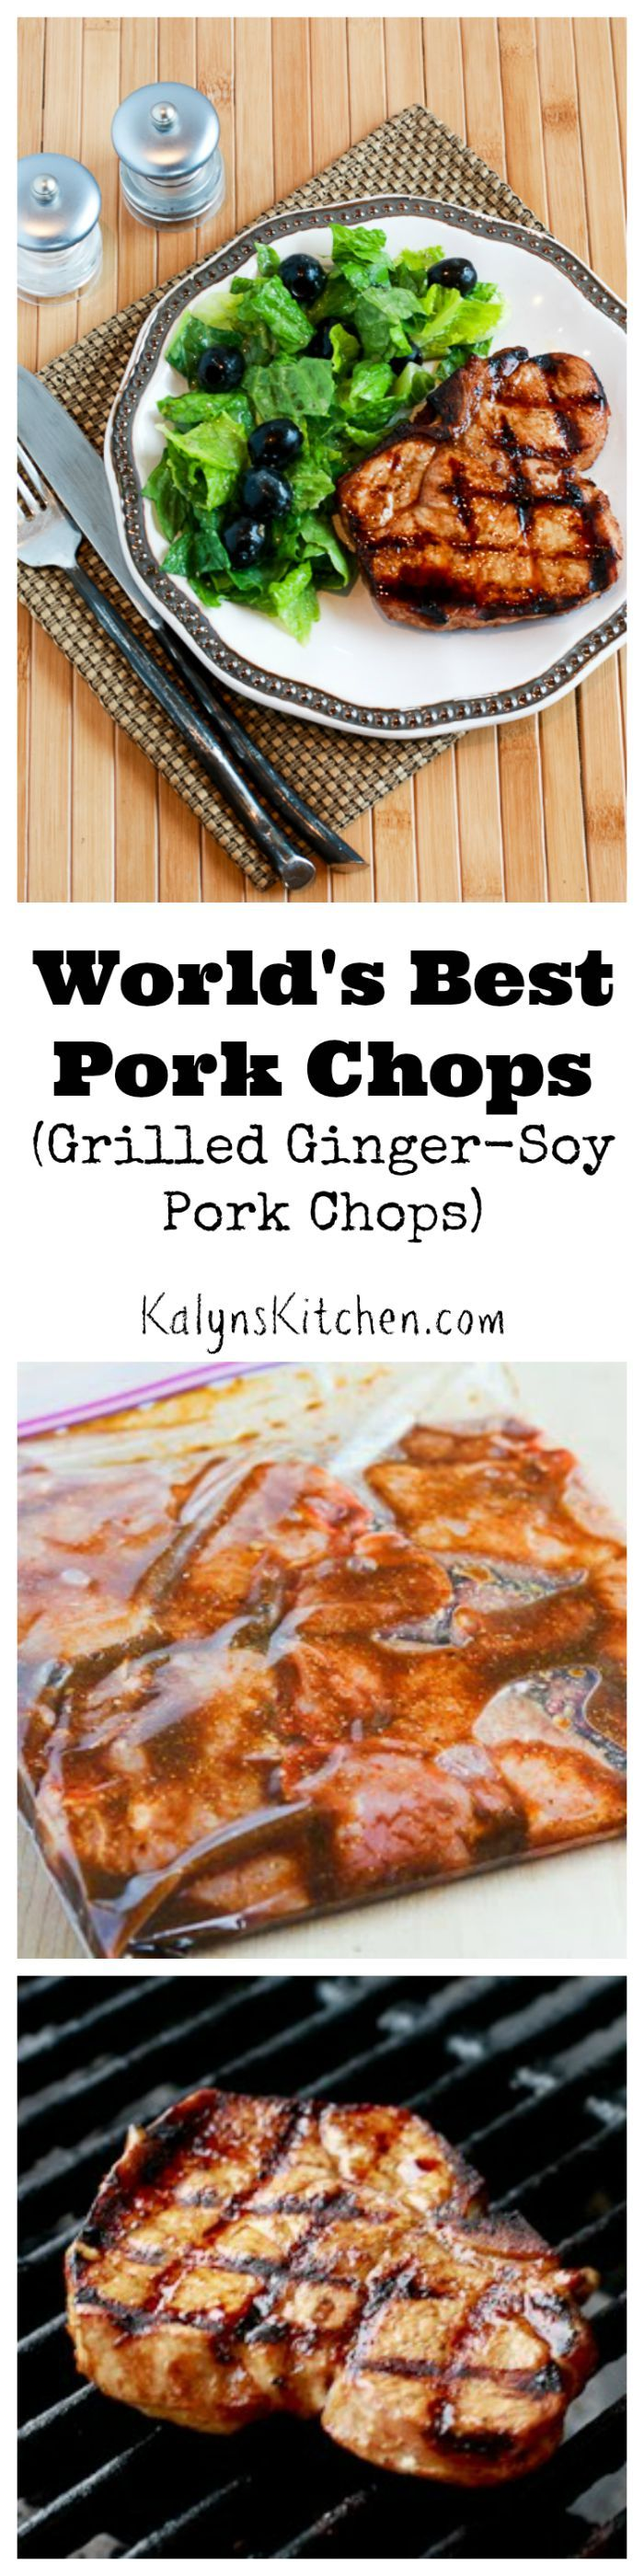 Back in the days when I organized catered houseboat trips, a Lake Powell client called these Grilled Ginger-Soy Pork Chops the World's Best Pork Chops! This recipe is perfect for Labor Day or any special occasion where you want to cook on the grill. [from KalynsKitchen.com]